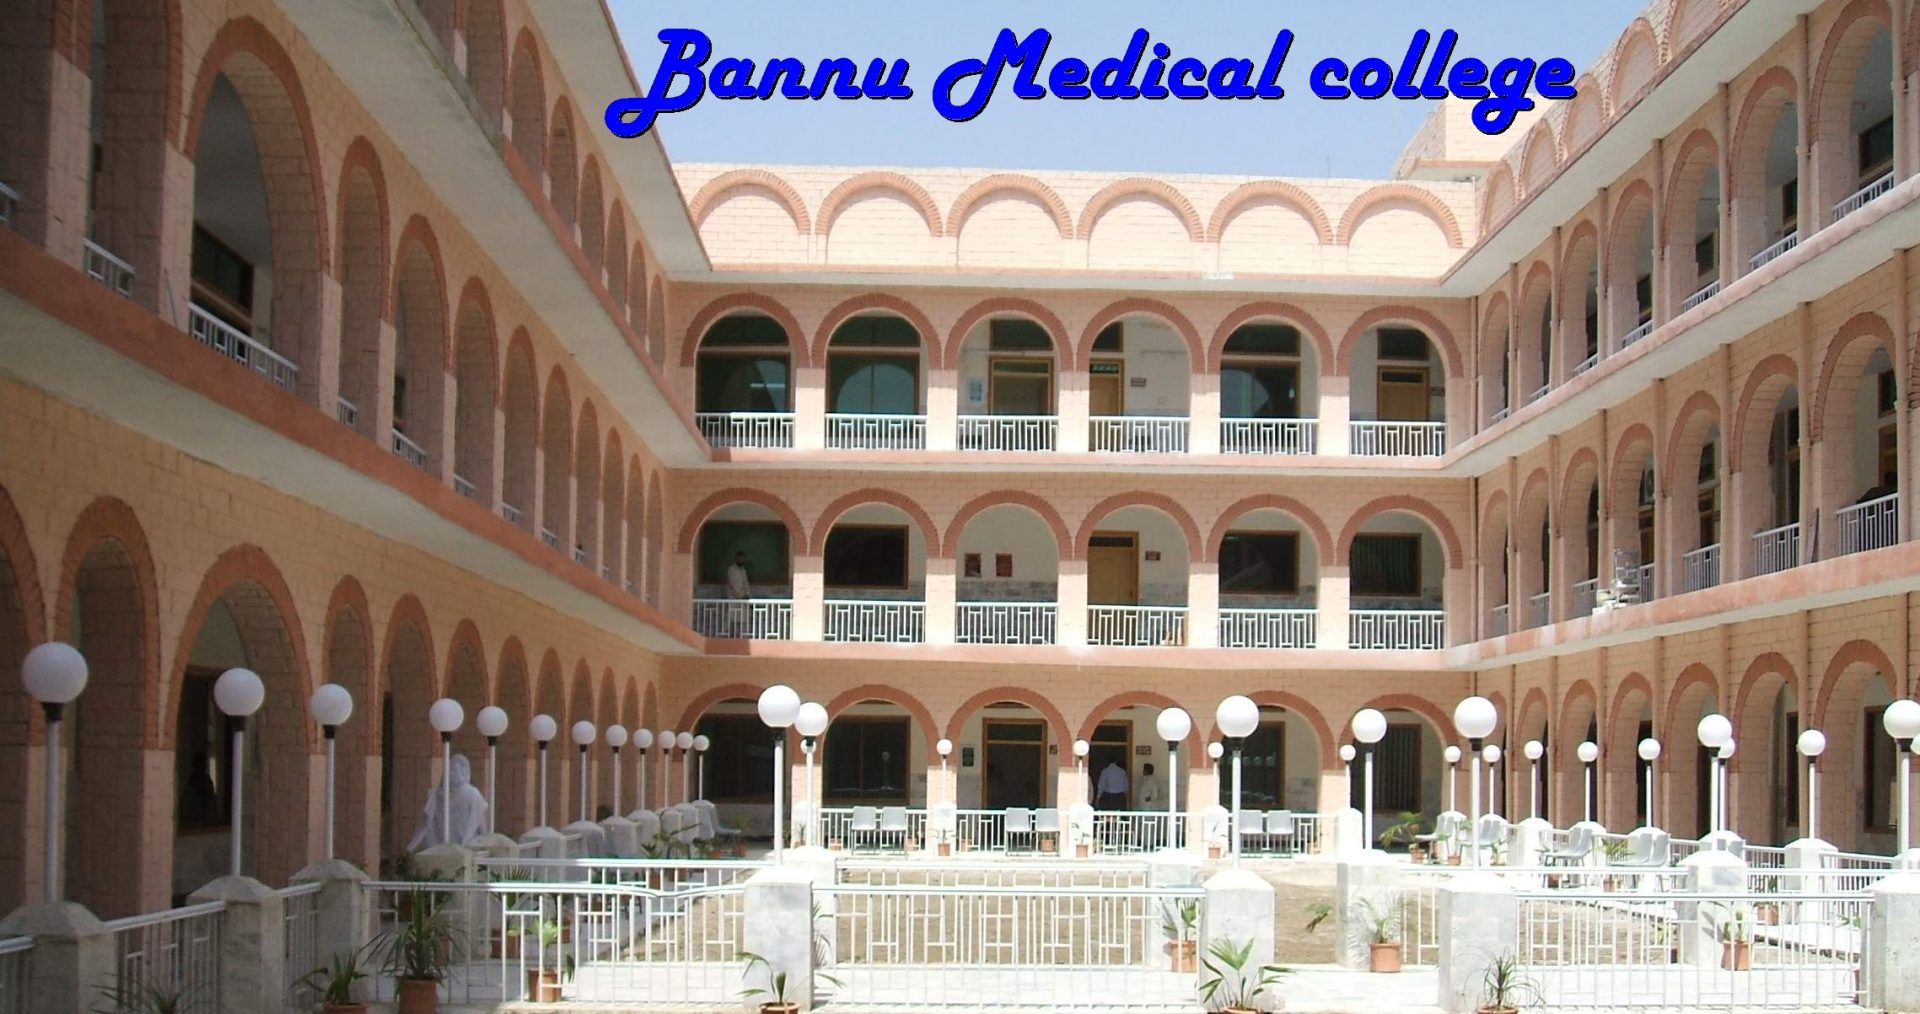 Bannu Medical College Admissions 2017 Requirements, Criteria